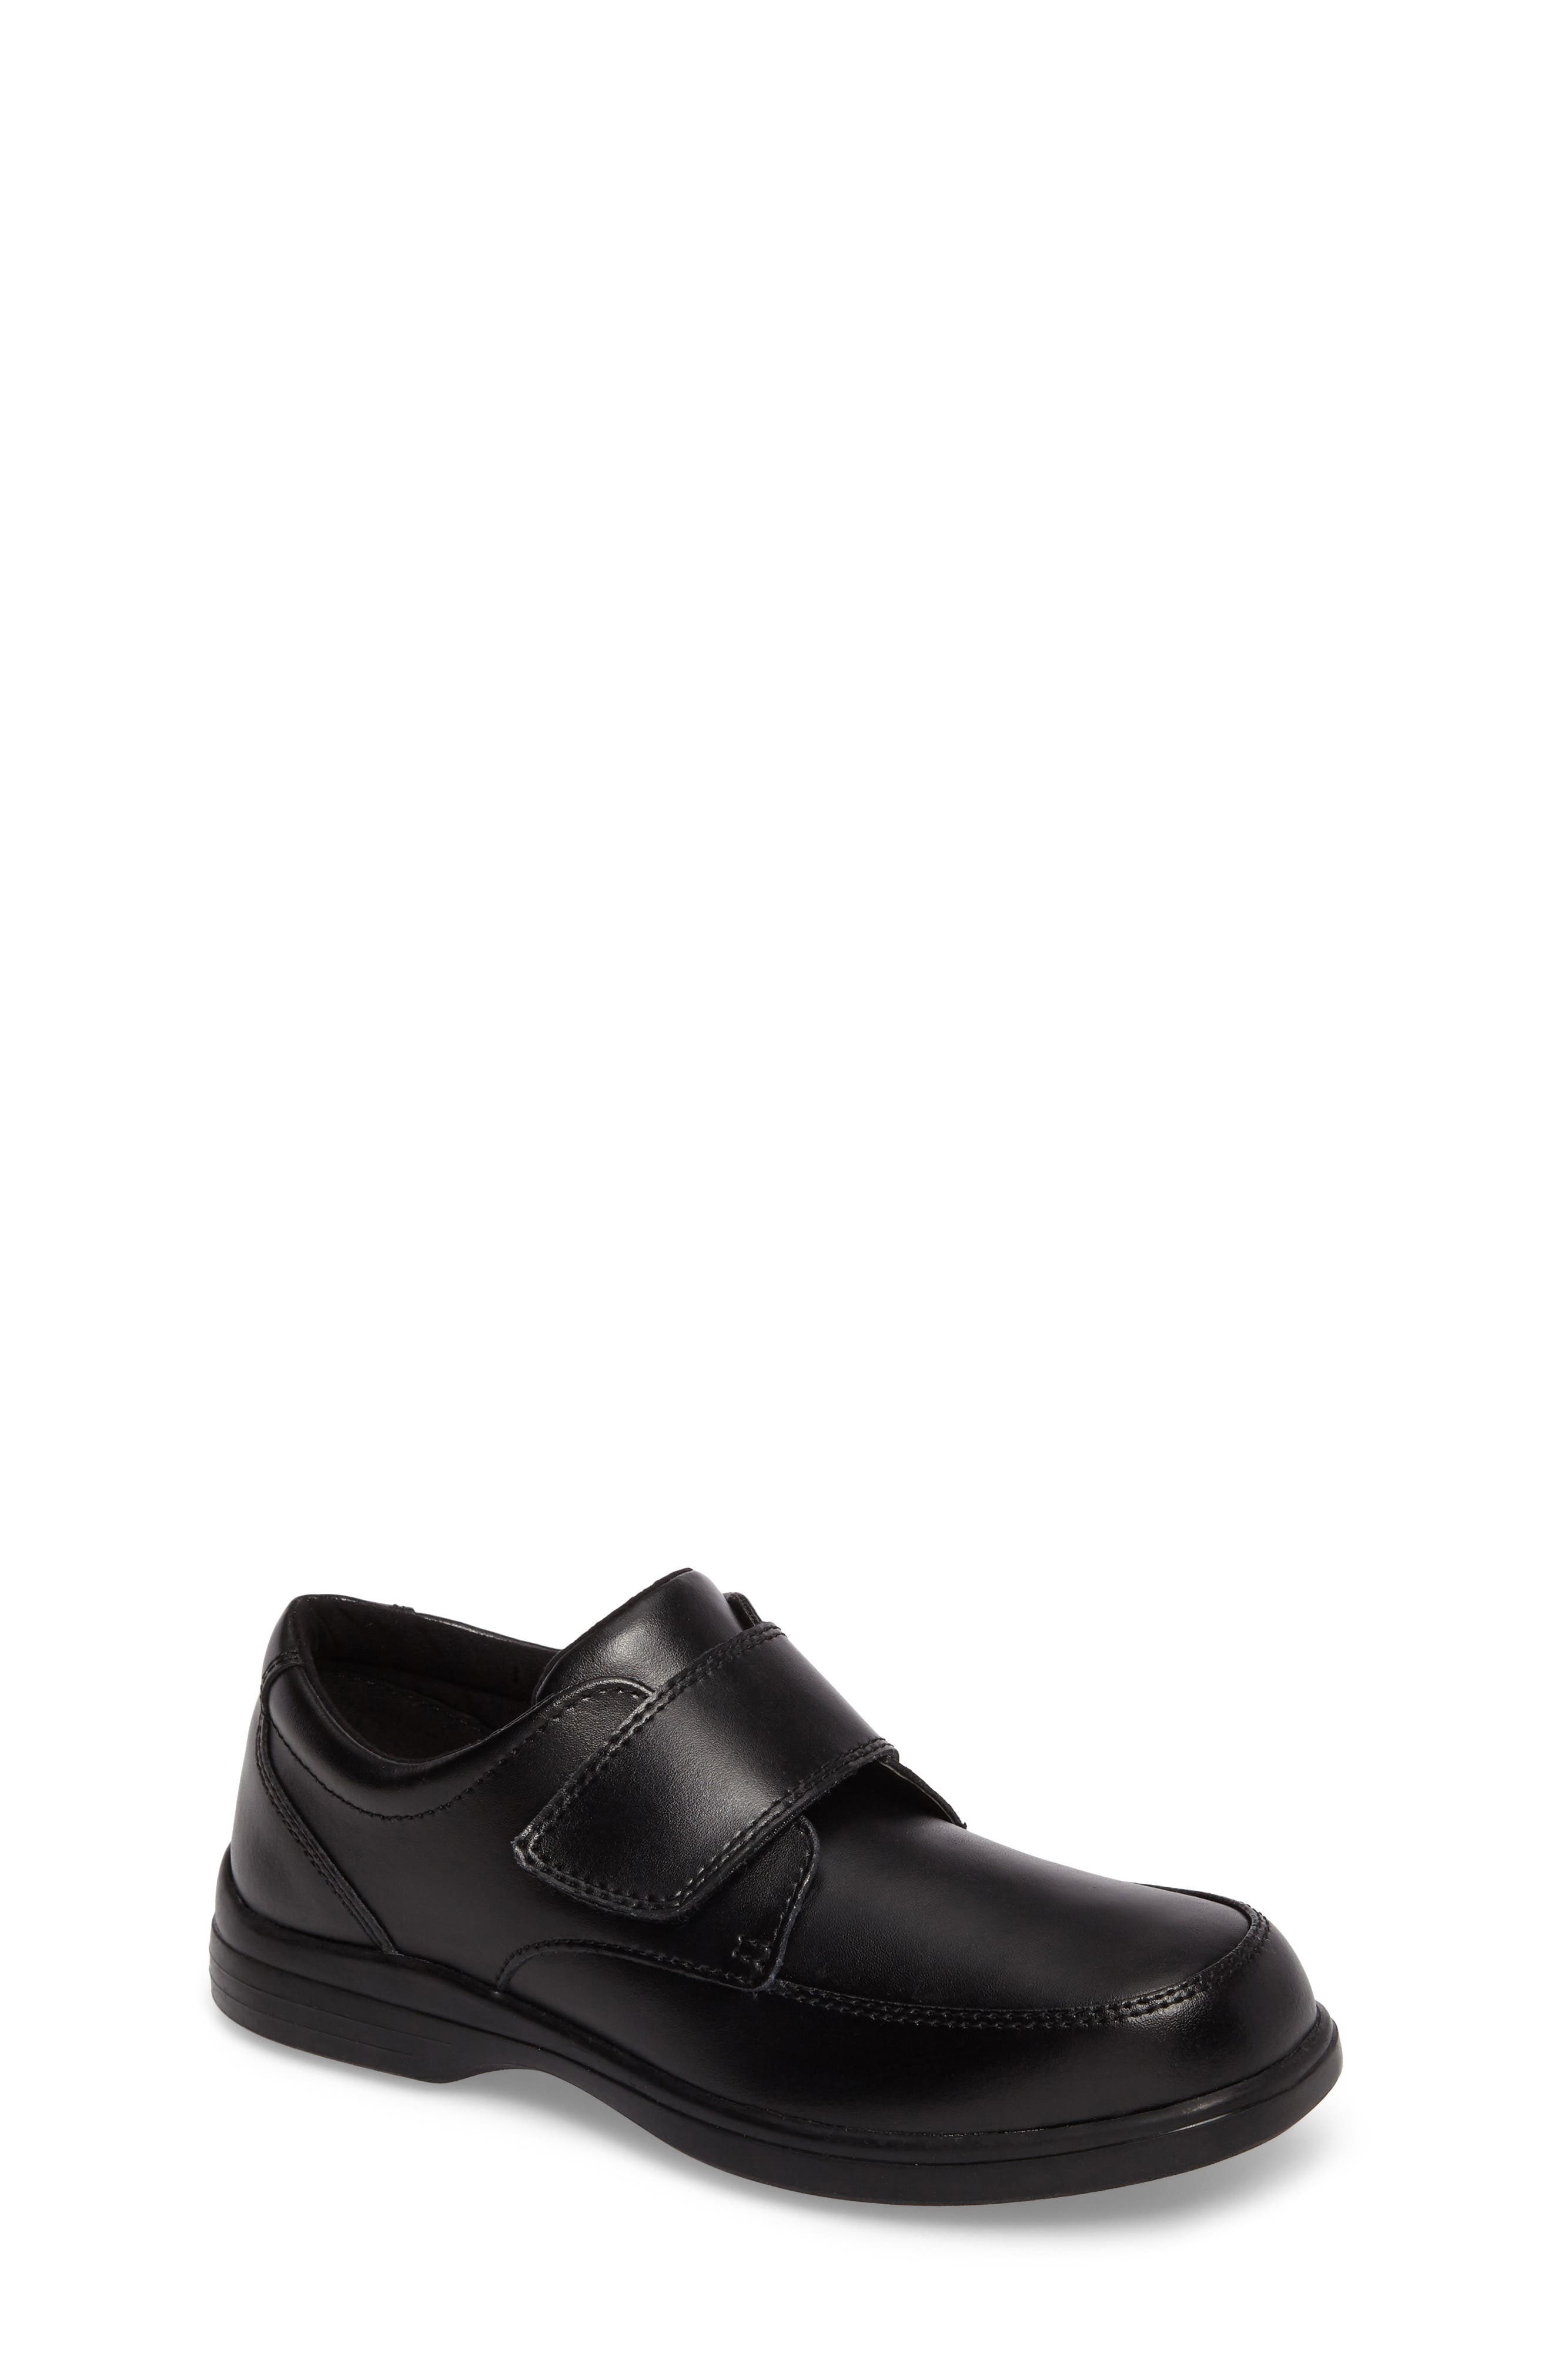 Hush Puppies Gavin Front Strap Dress Shoe,                         Main,                         color, BLACK LEATHER